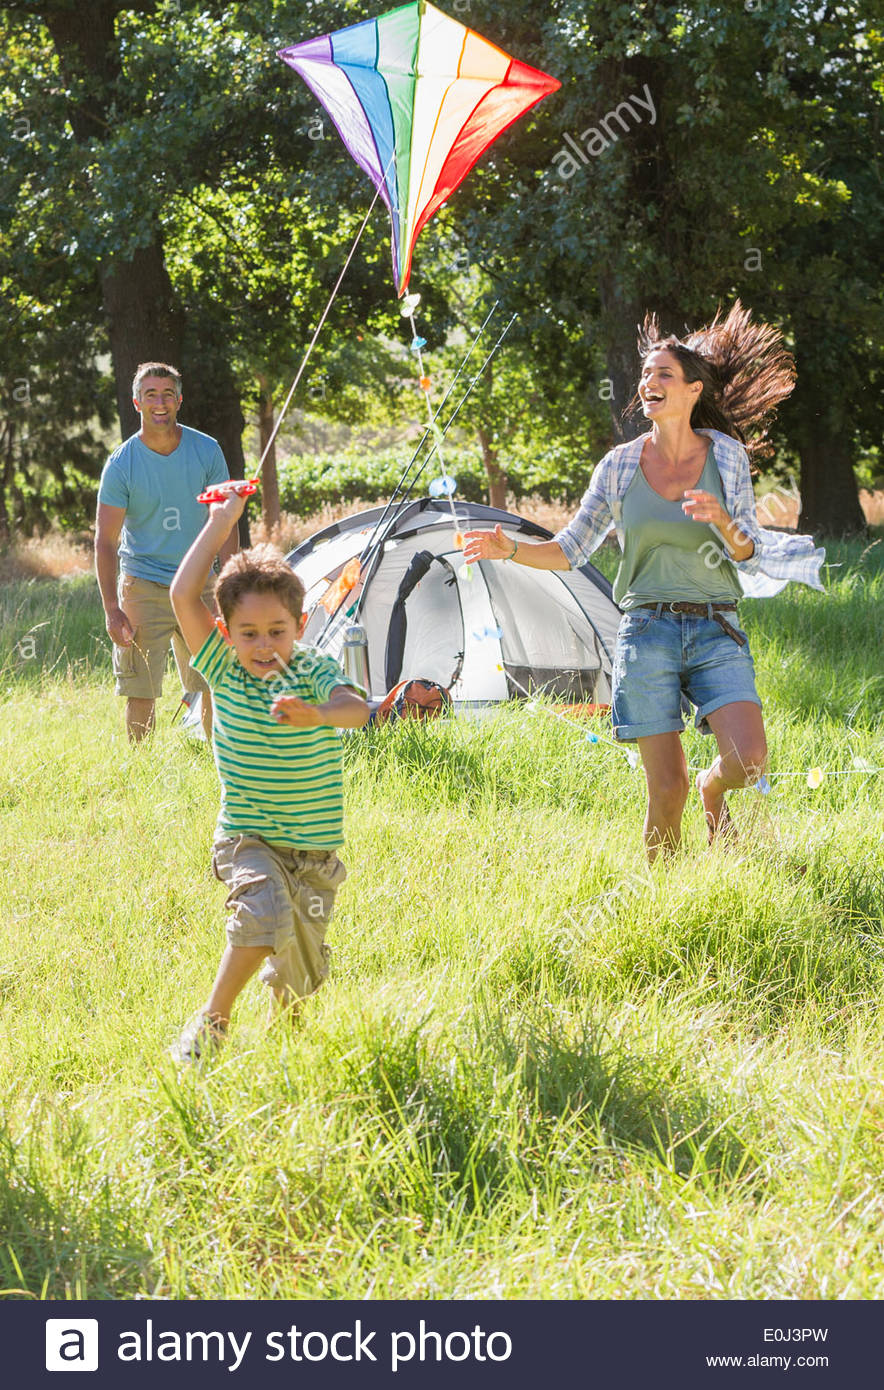 Family Flying Kite On Camping Holiday In Countryside - Stock Image